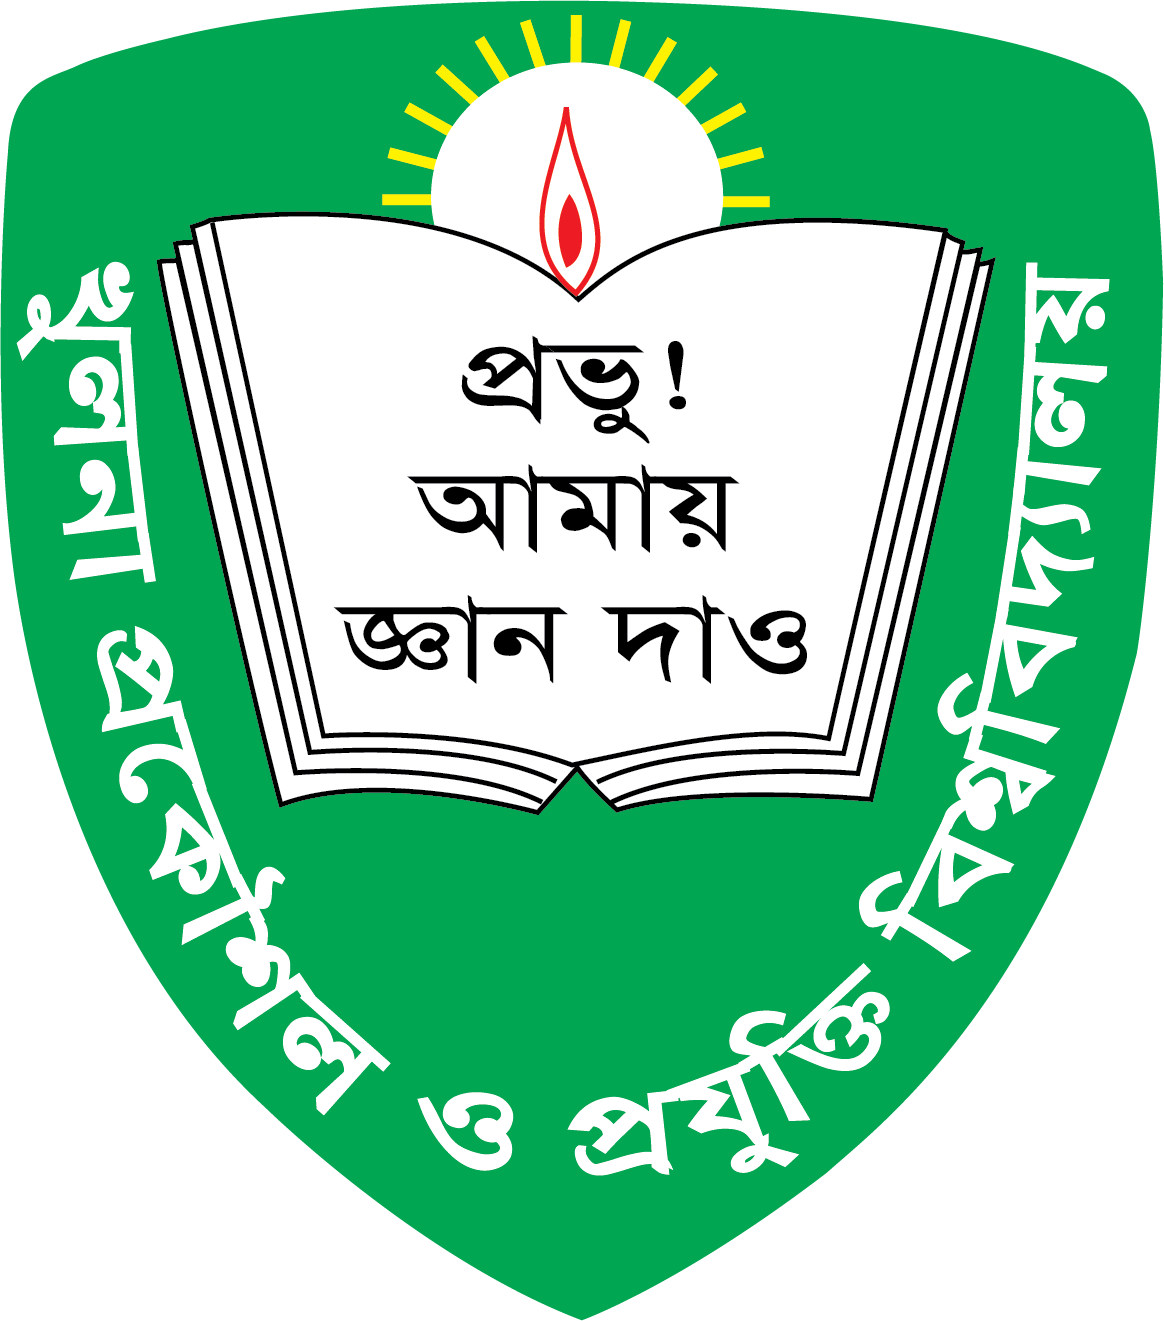 Khulna University of Engineering and Technology (KUET)